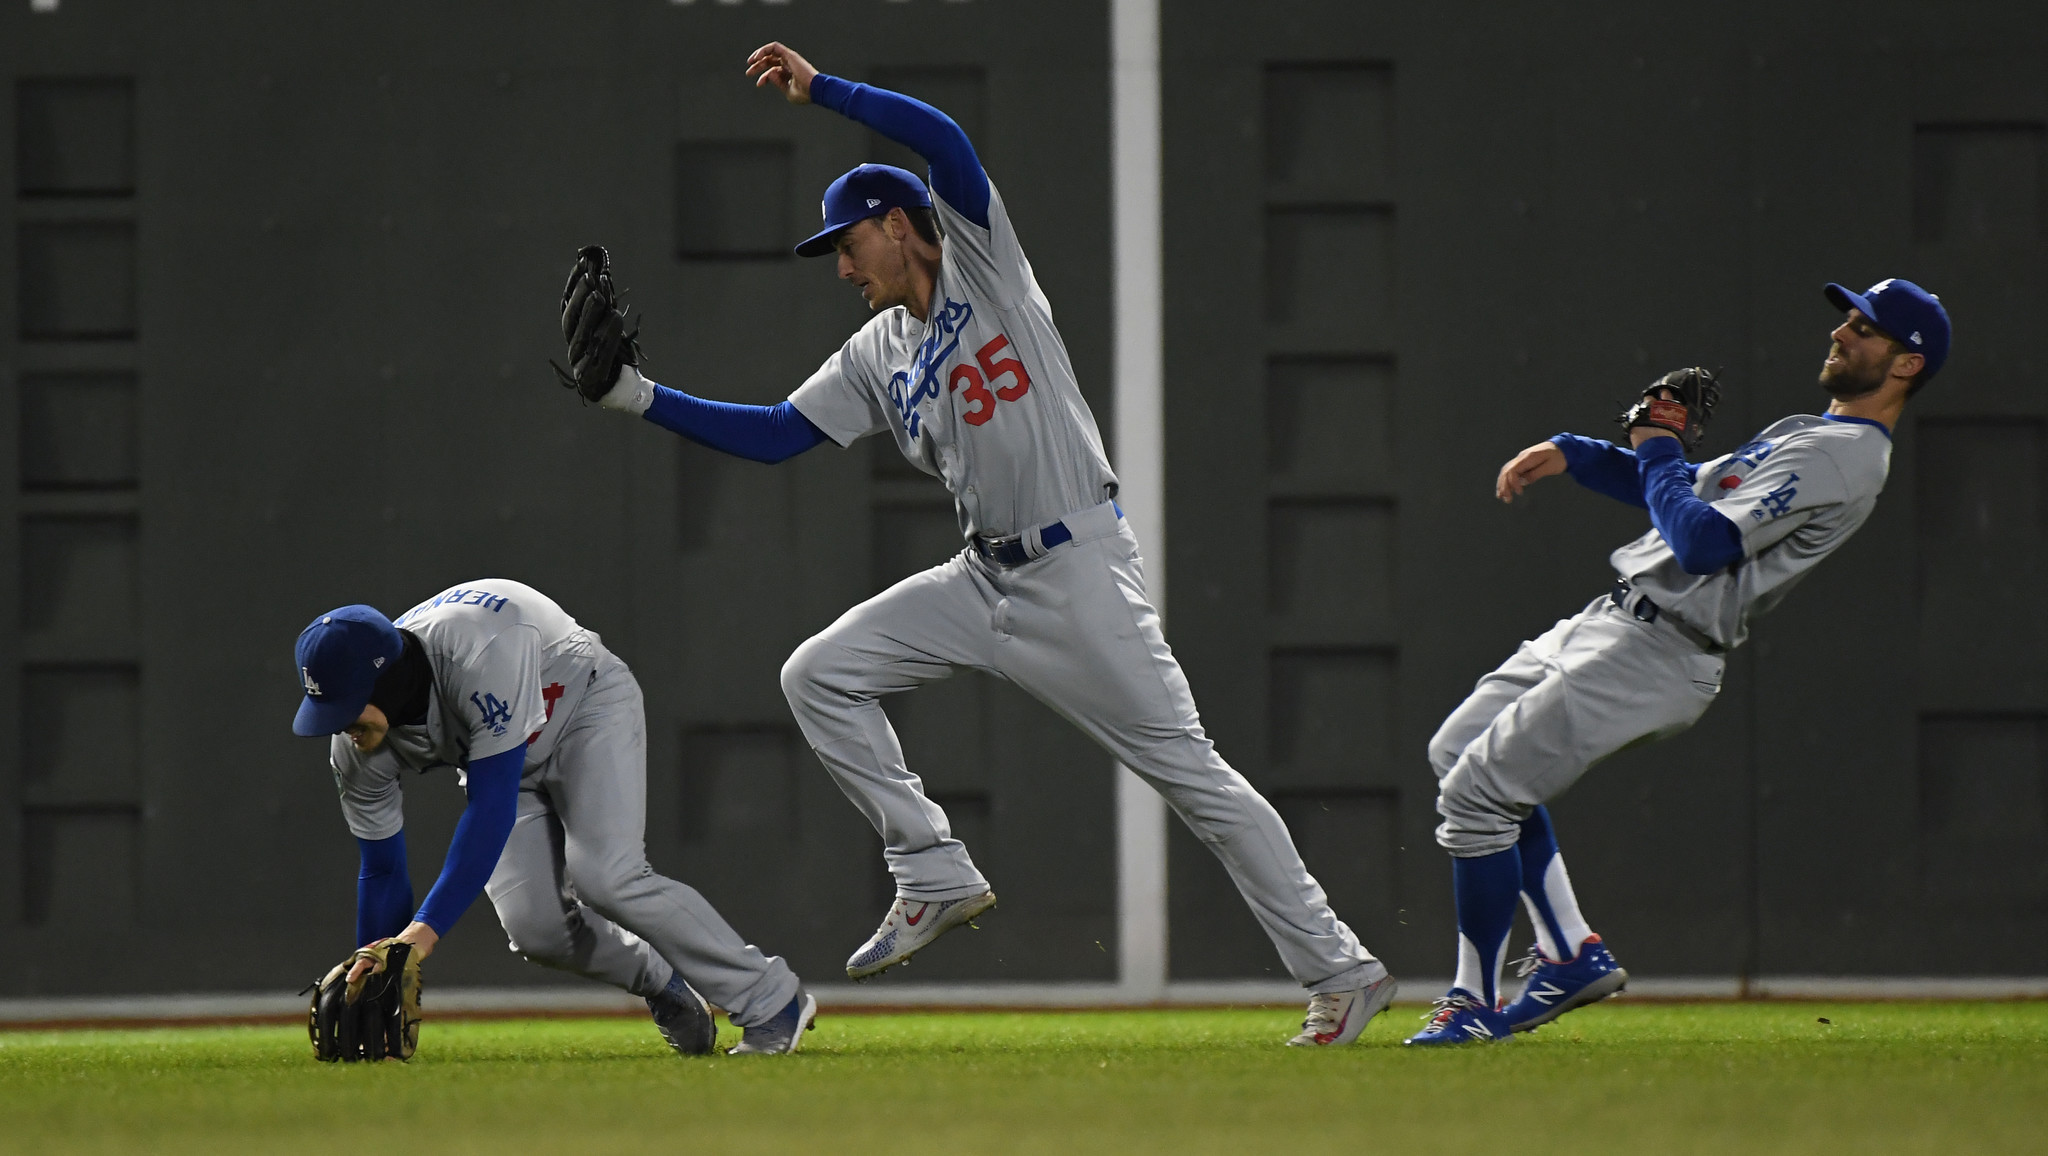 BOSTON, MA WEDNESDAY, OCTOBER 24, 2018 Dodgers Cody Bellinger makes a leaping catch as teammates E